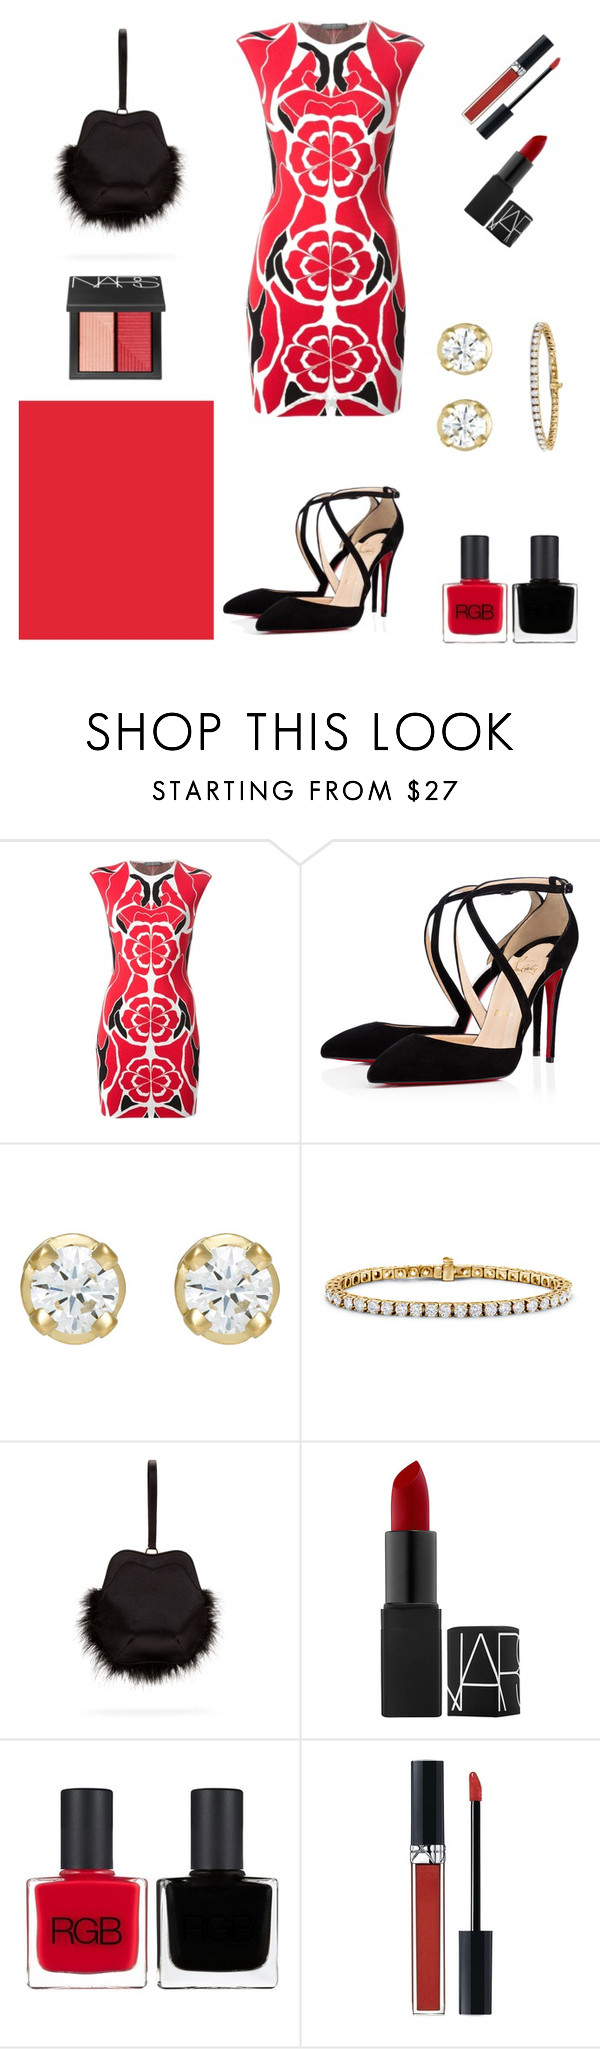 """Red Represent Enthusiasm"" by weijin ❤ liked on Polyvore featuring Alexander McQueen, Hoorsenbuhs, Blue Nile, Simone Rocha, RGB, Christian Dior and NARS Cosmetics"